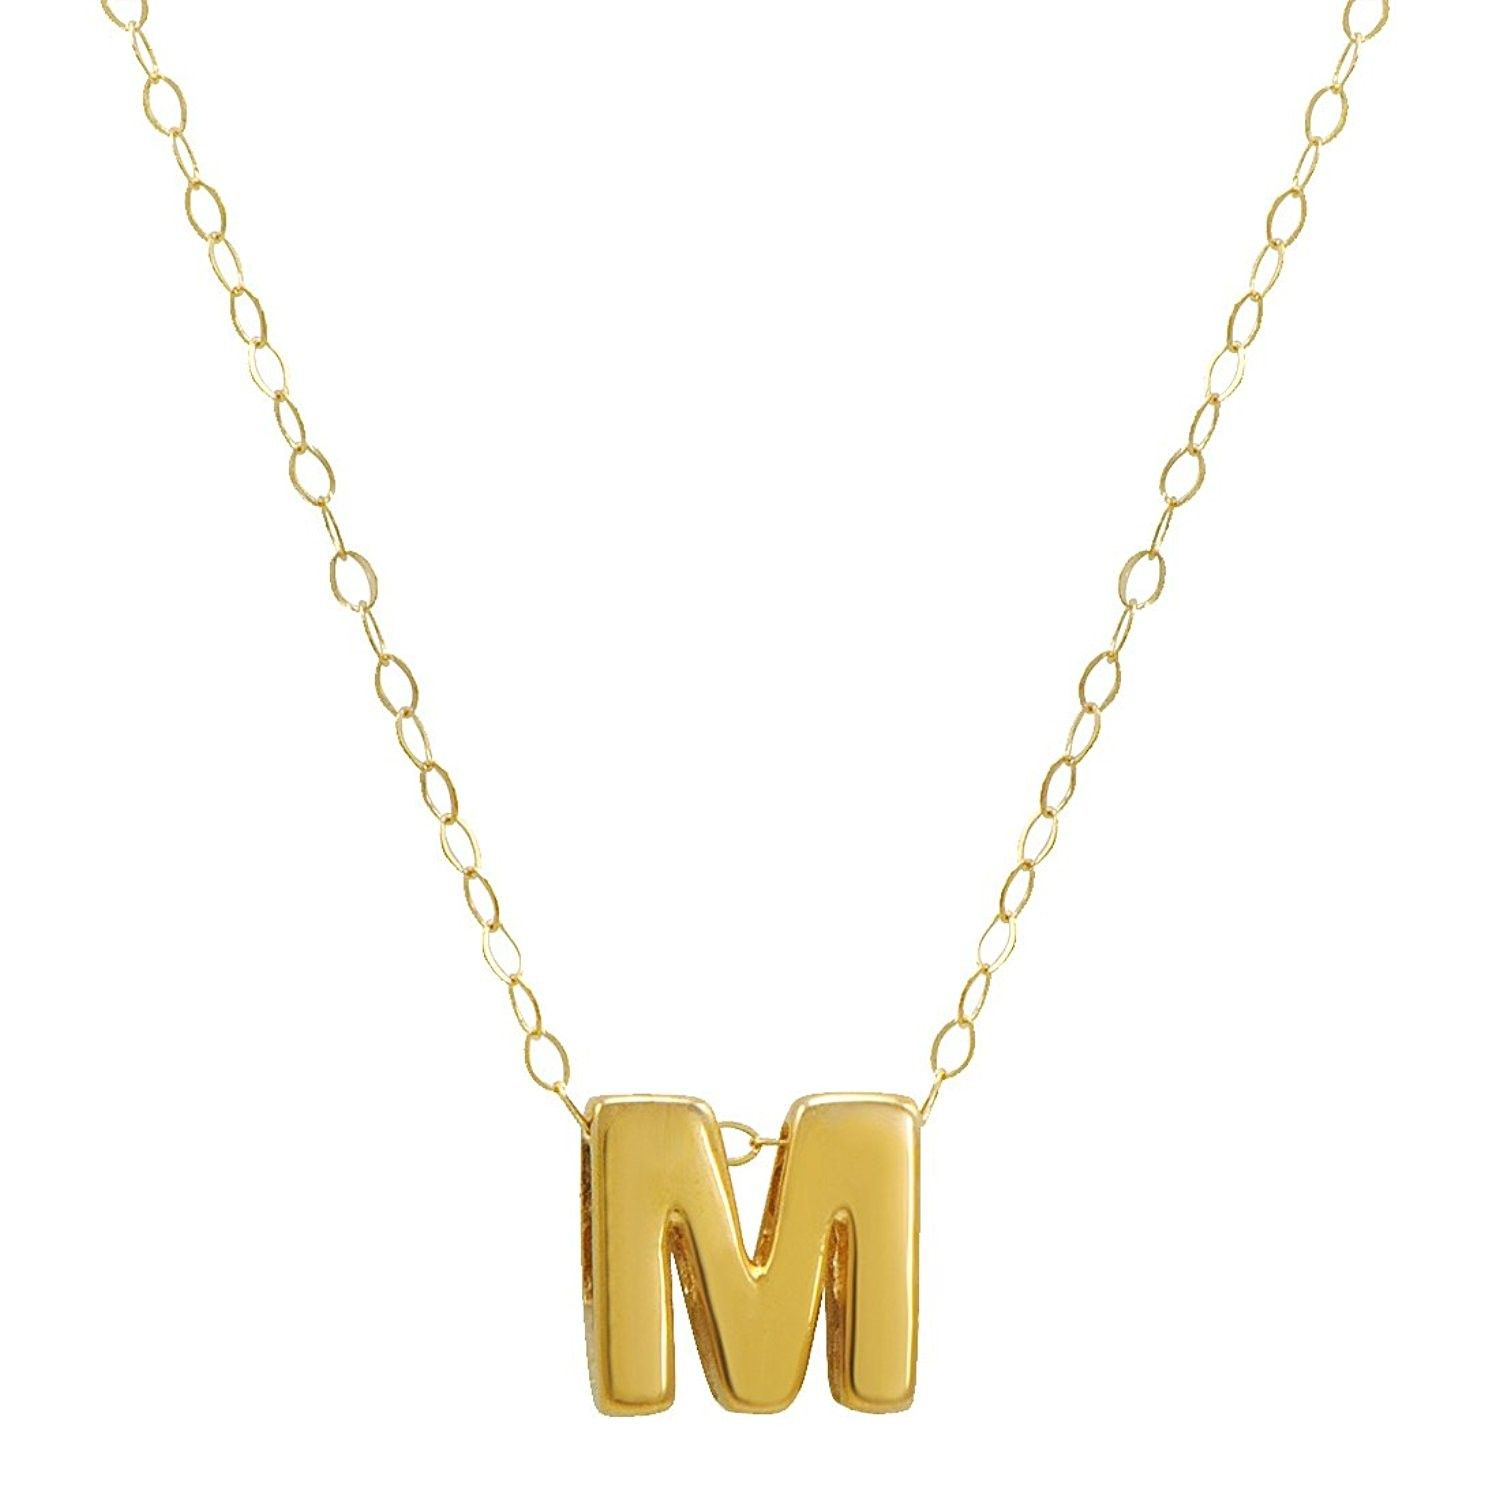 Amanda Rose 10k Yellow Gold Petite Initial M Pendant Necklace On A 17 In Chain Cv12oe273kr Initial Pendant Necklace 10k Gold Chain Fine Gold Necklace